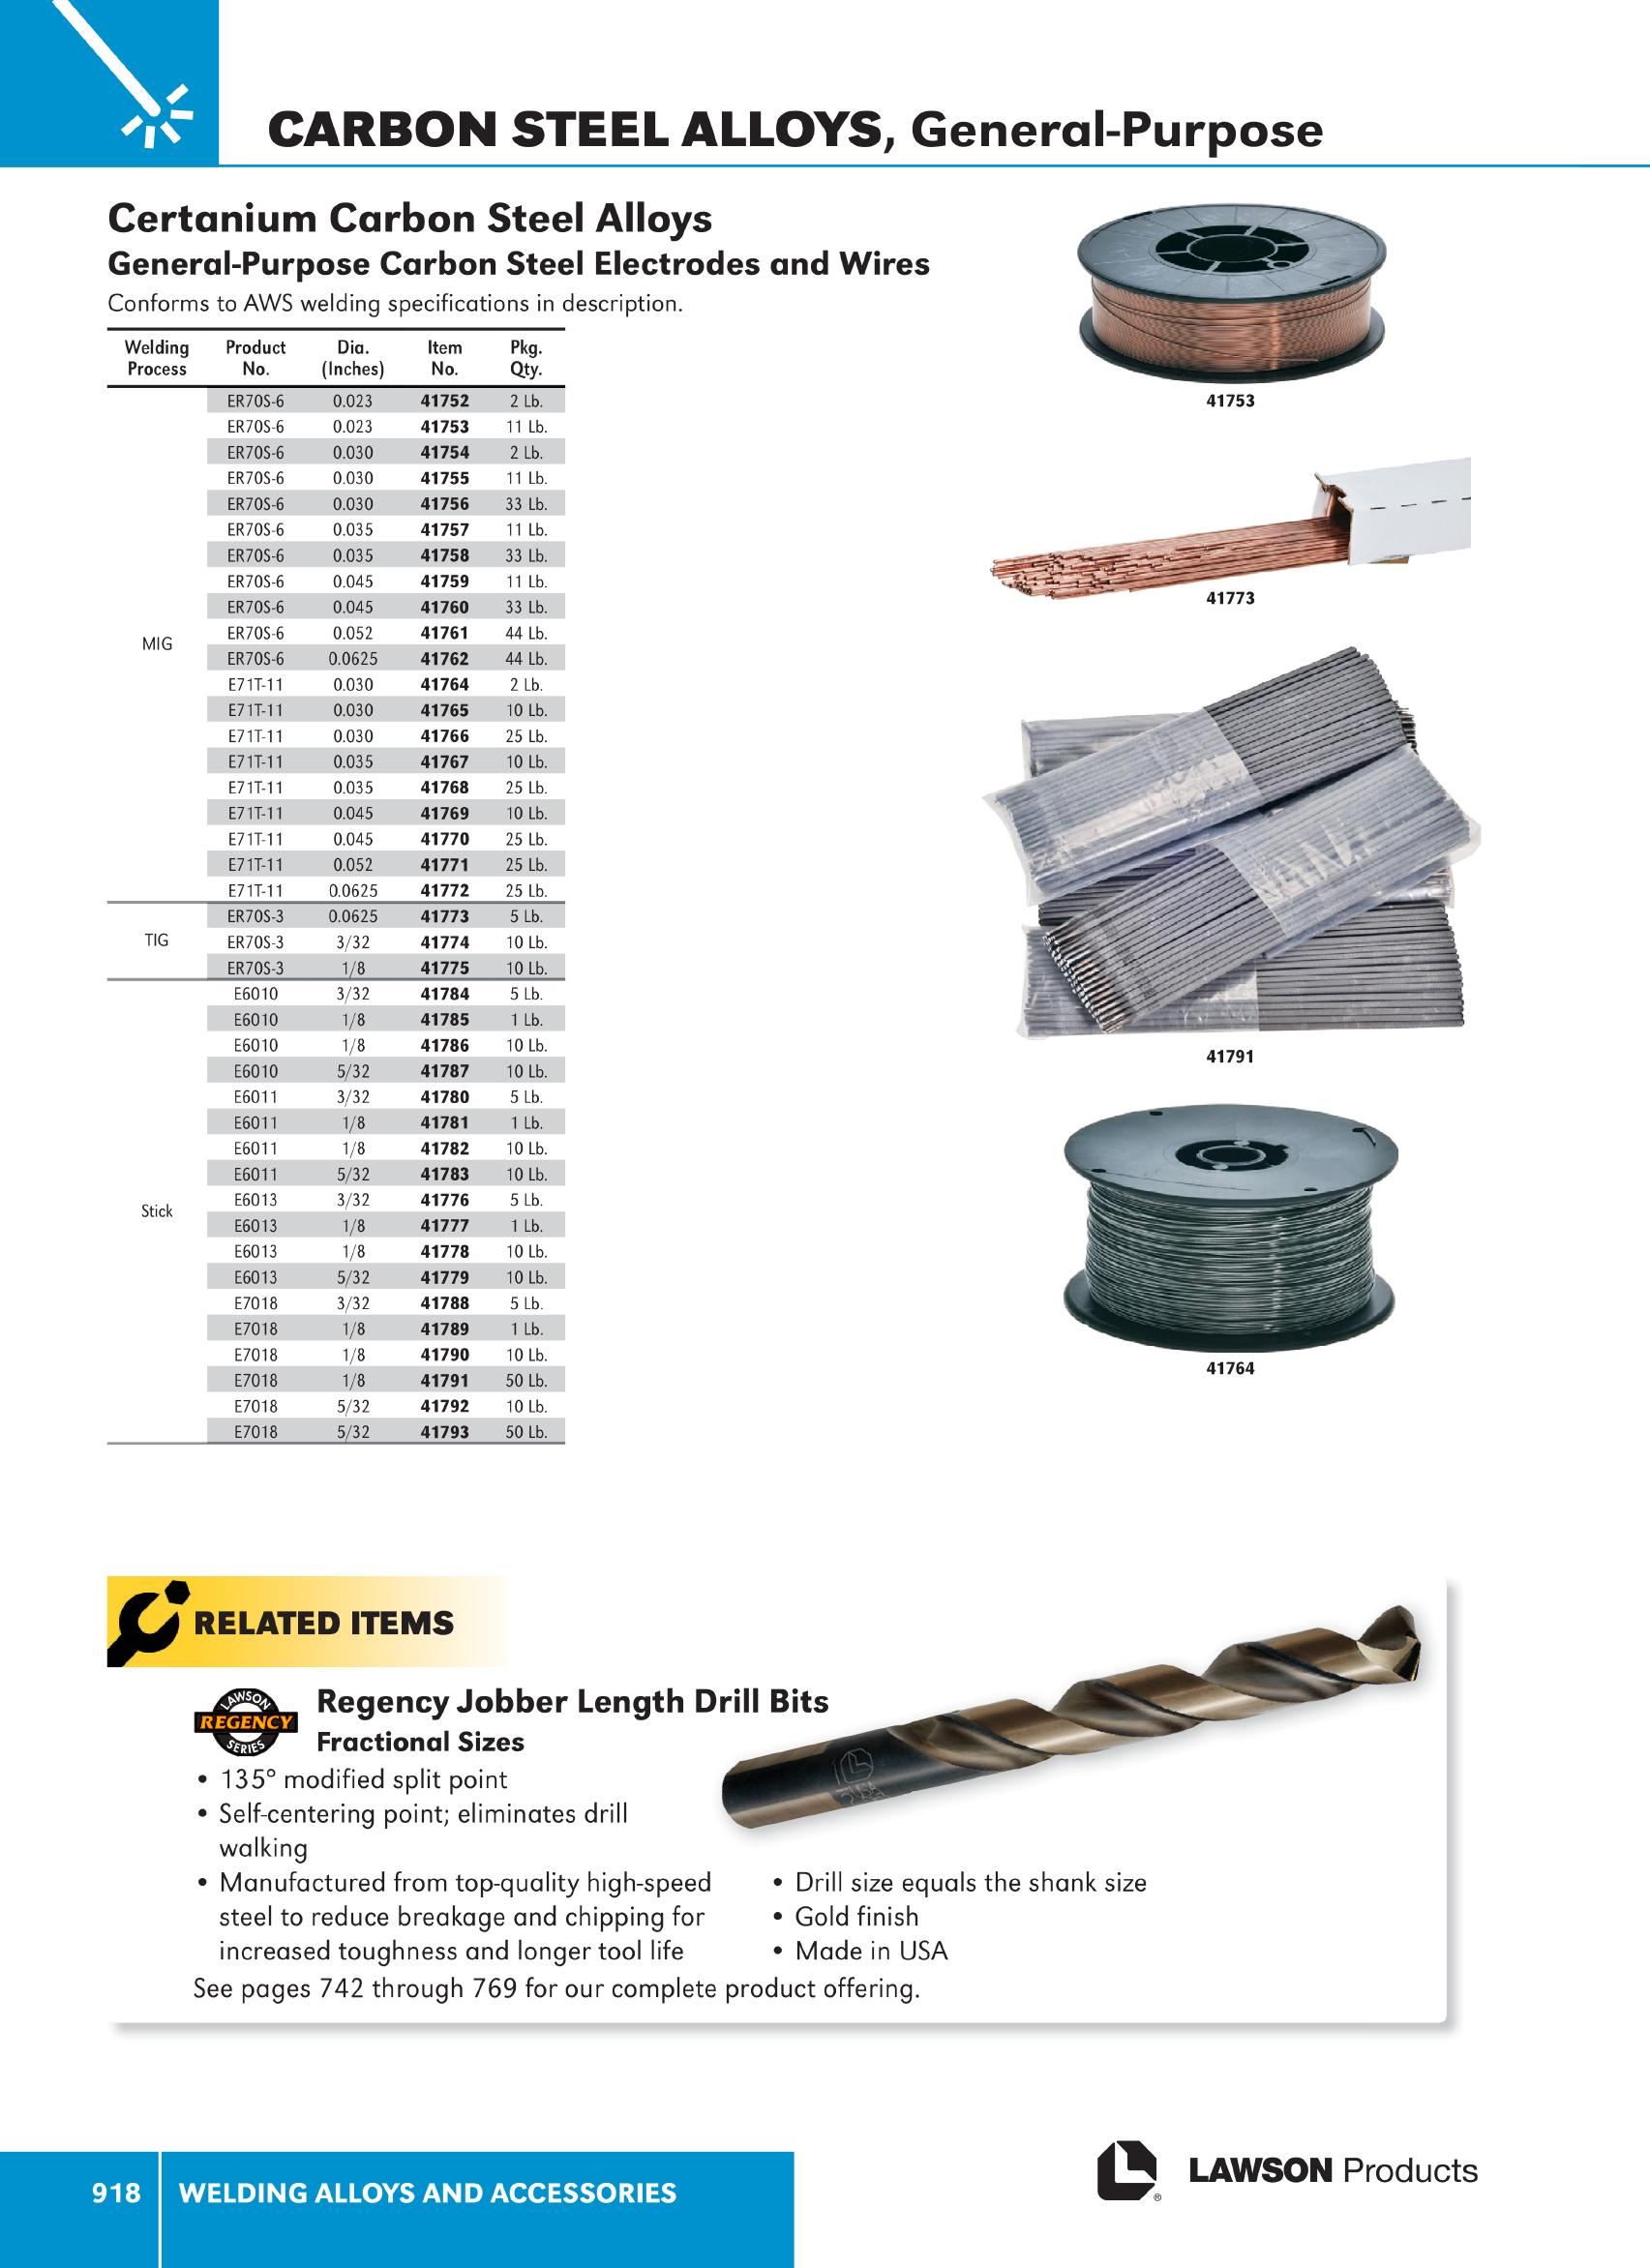 Welding Alloys and Accessories - Lawson Products Catalog CA 2015 ...